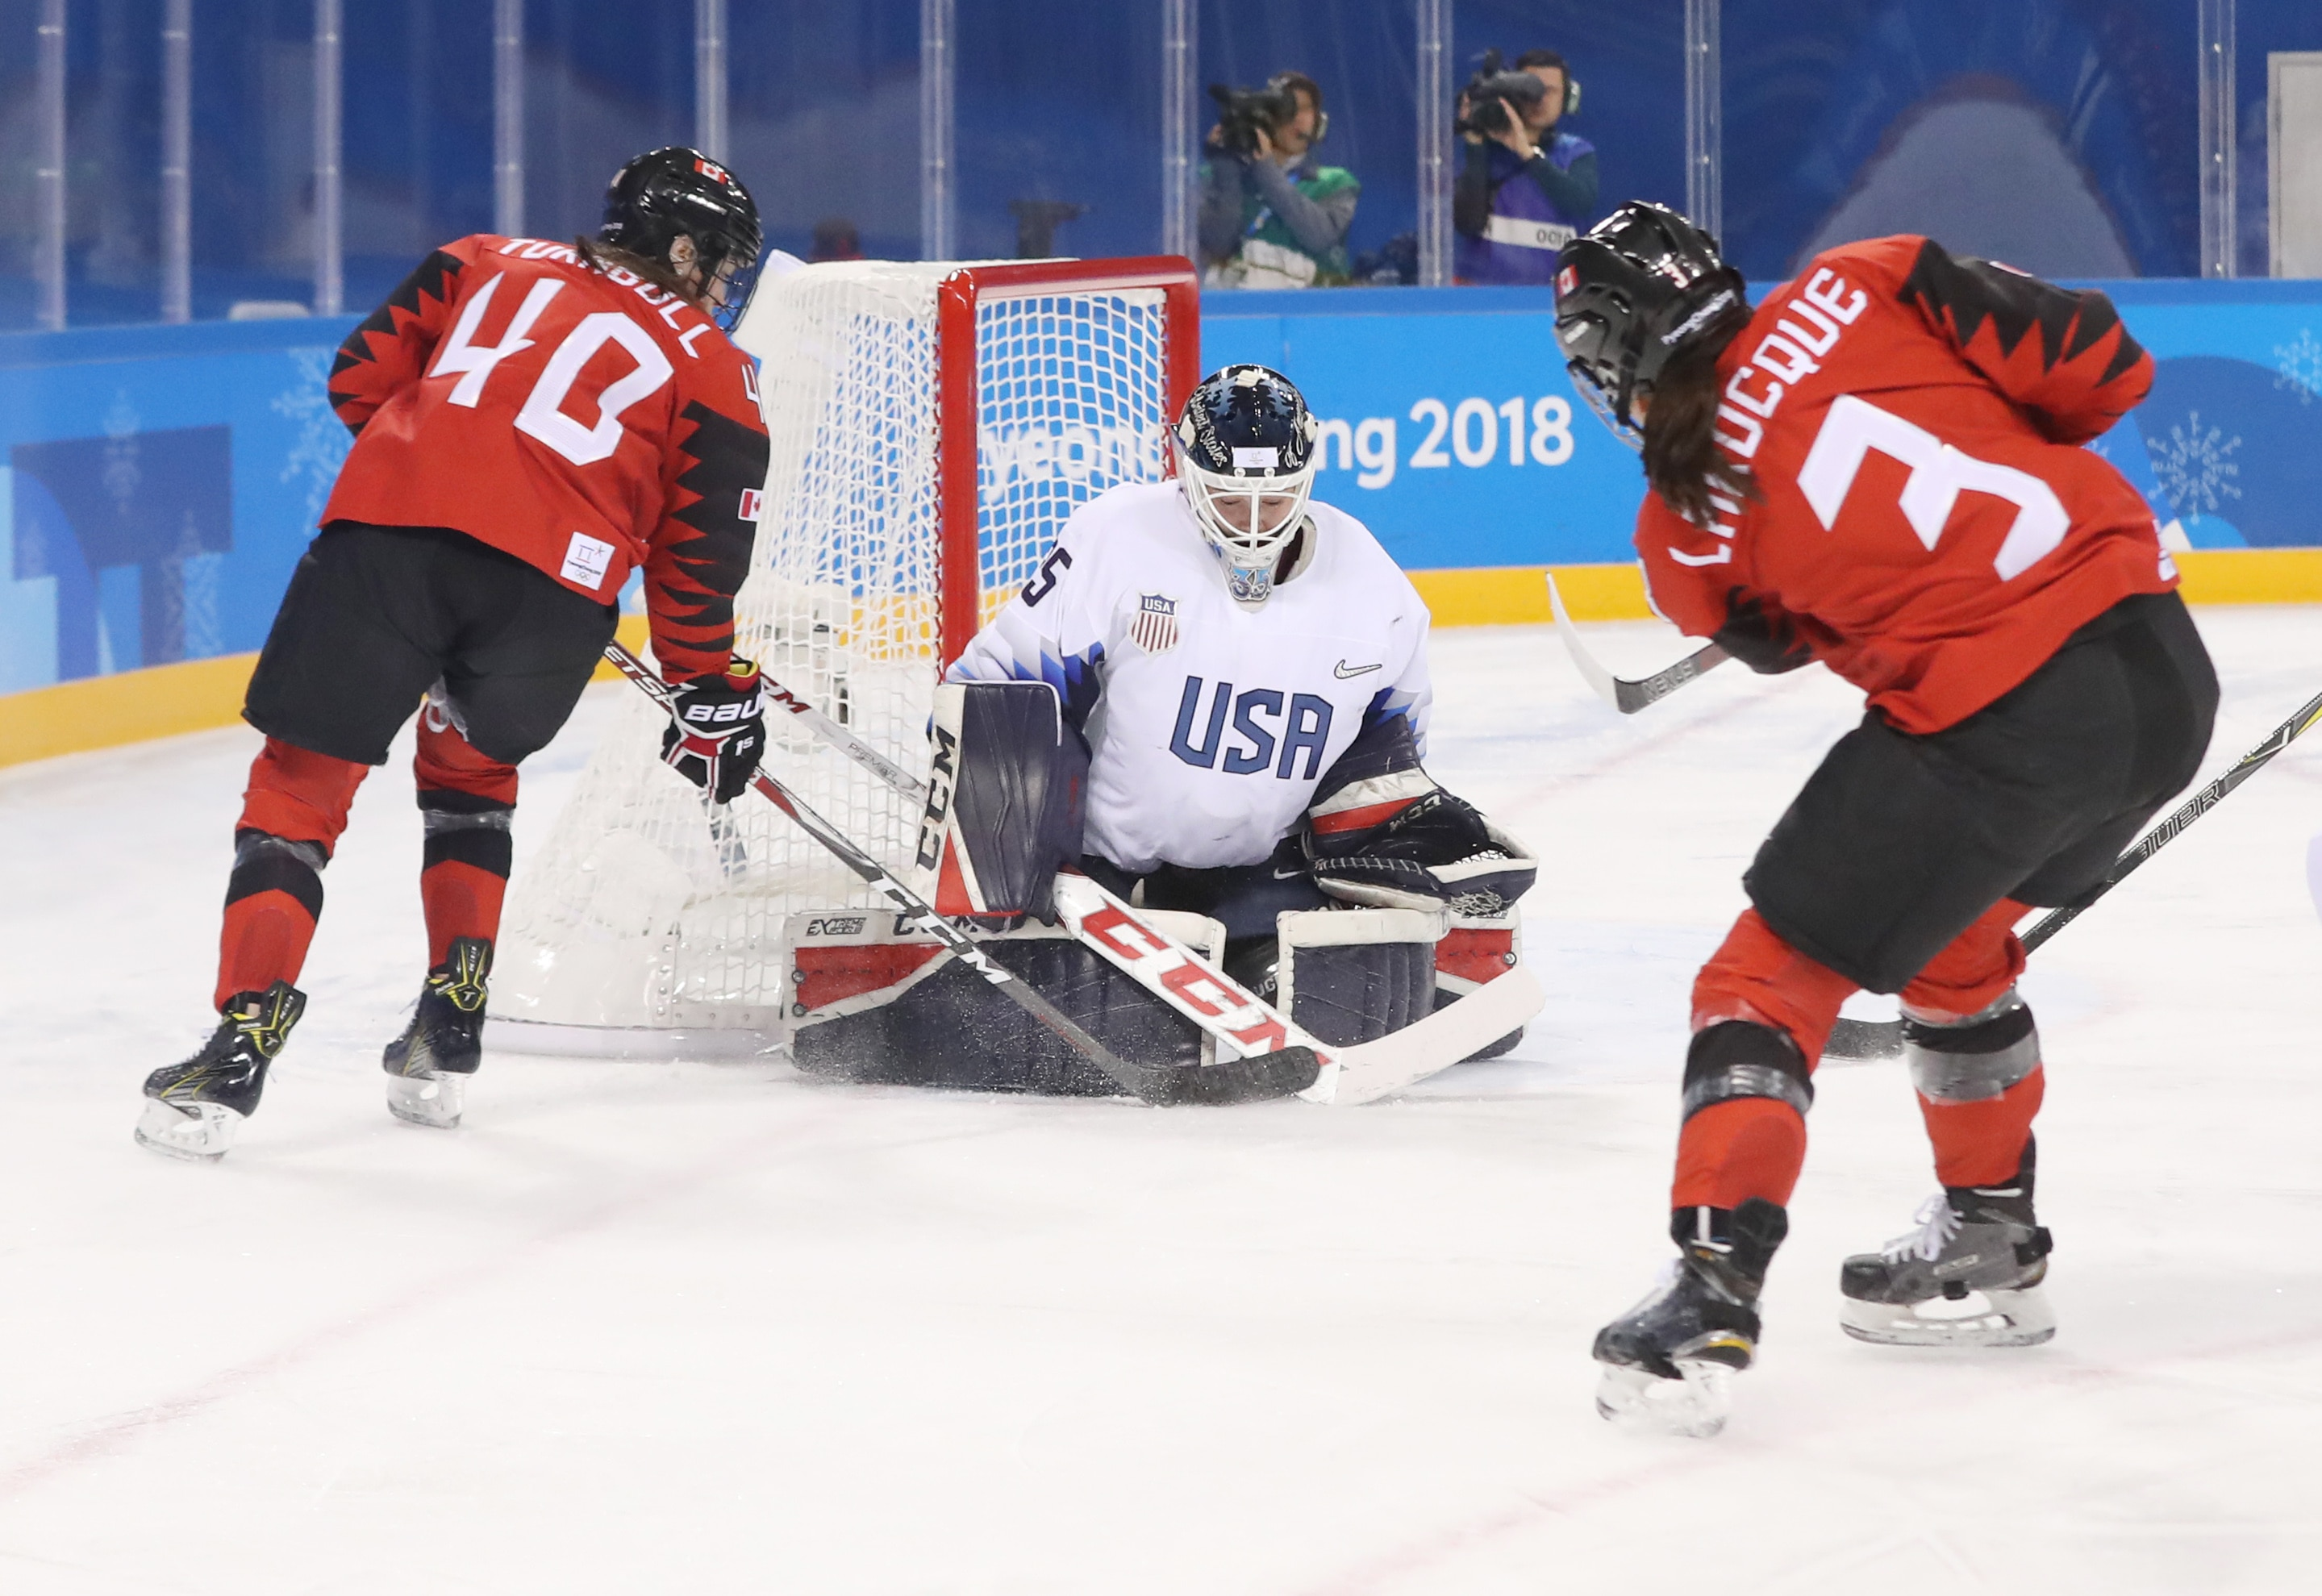 Maddie Rooney represented the USA in the 2018 Olympics.